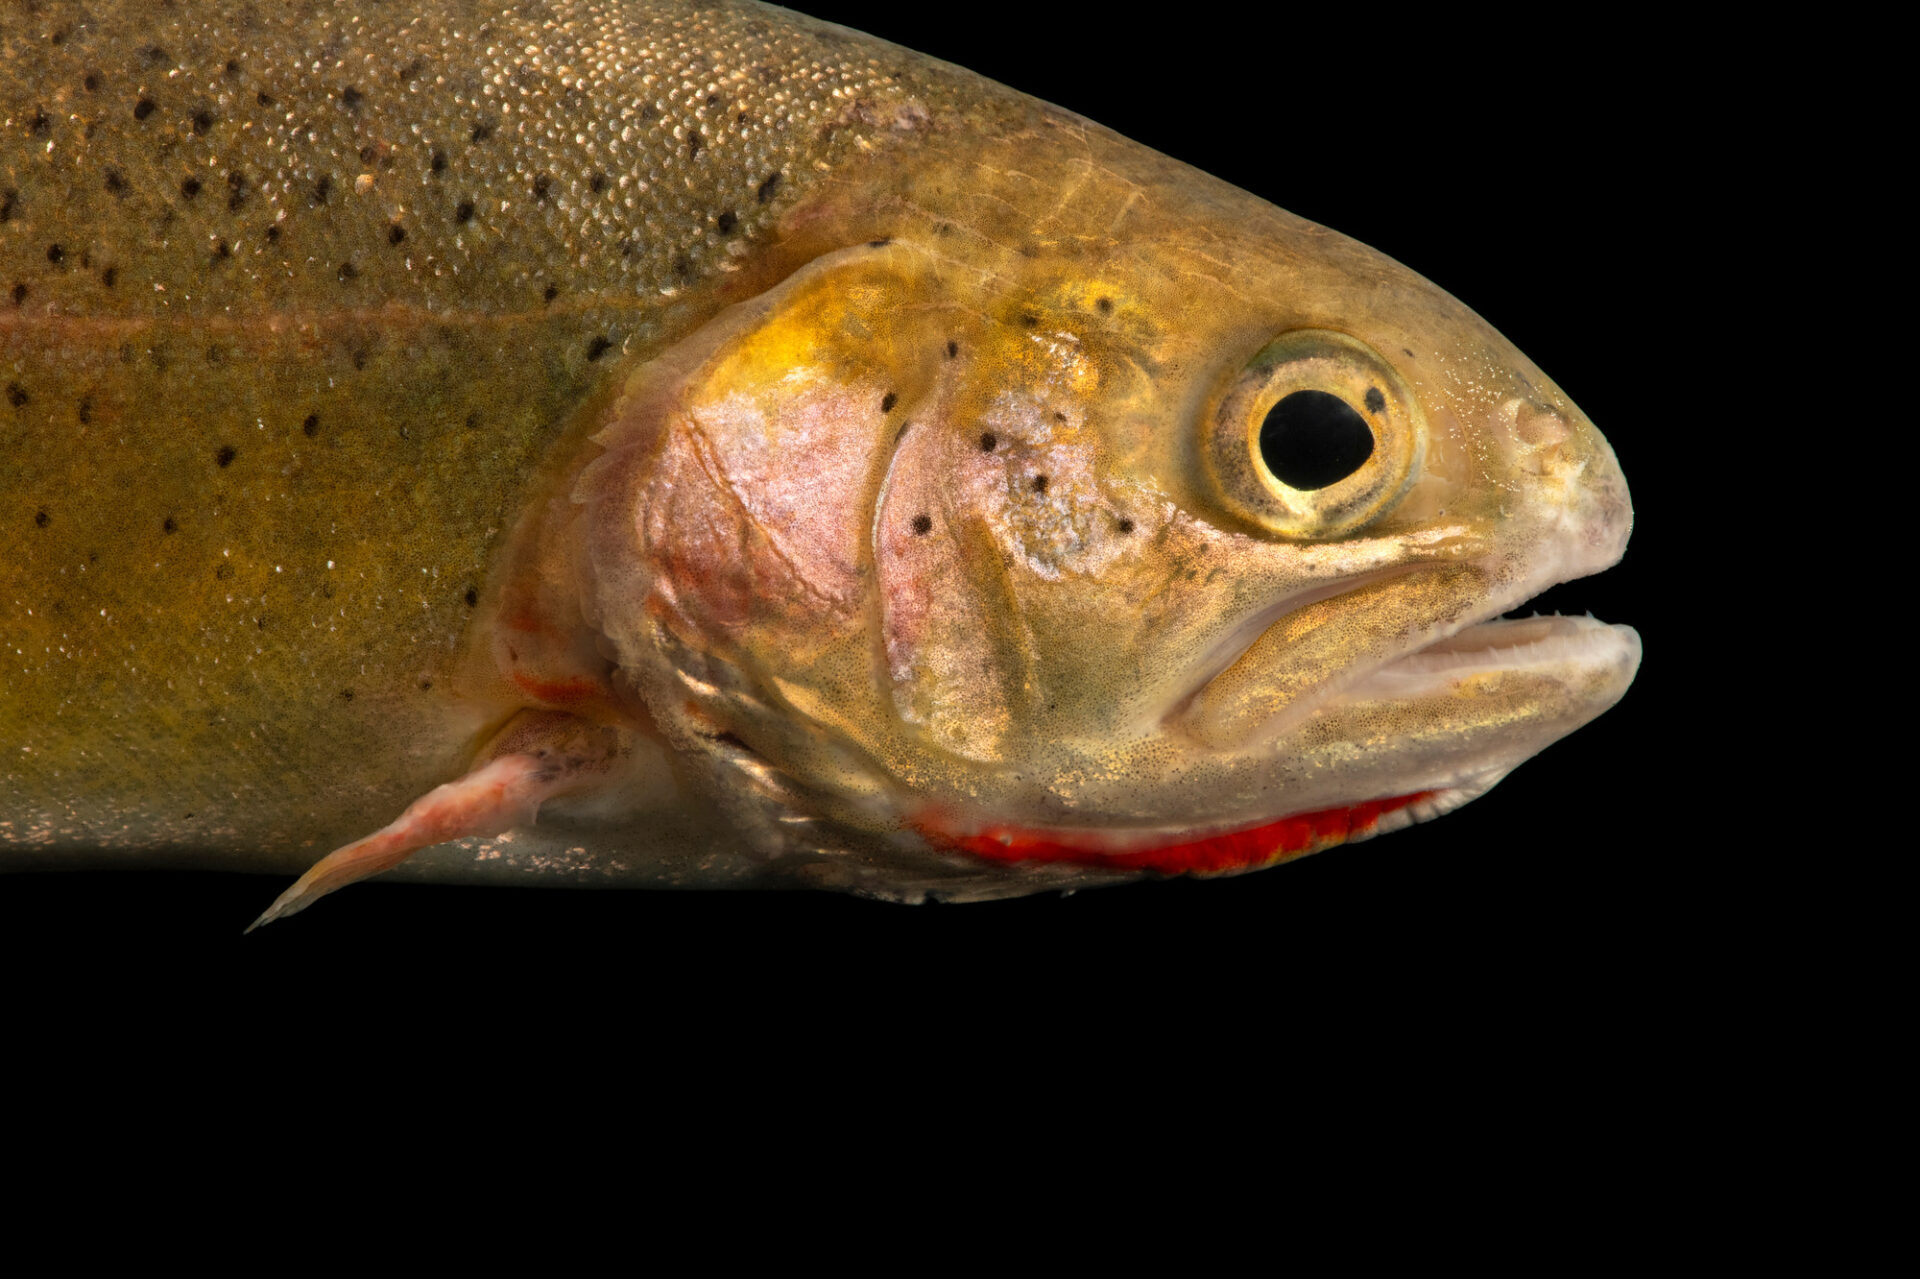 Photo: A Snake River cutthroat trout (Oncorhynchus clarkii behnkeli) at the Schramm Education Center near Gretna, NE.